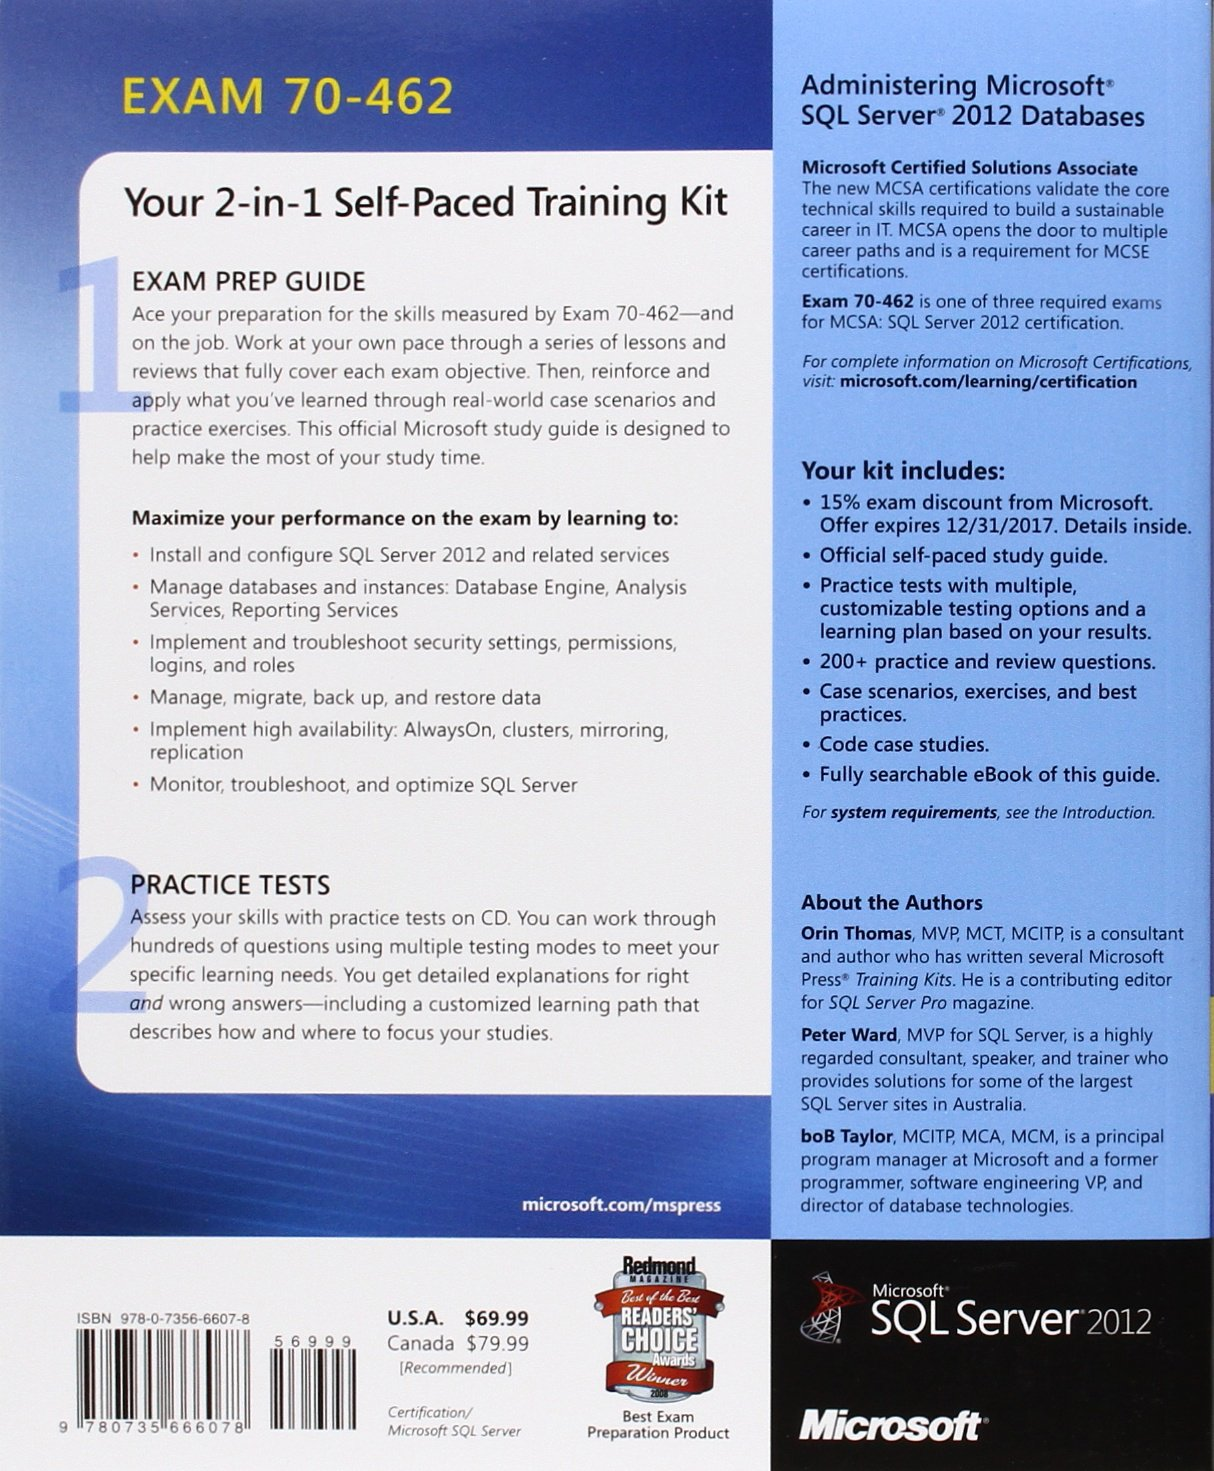 Training kit exam 70 462 administering microsoft sql server 2012 training kit exam 70 462 administering microsoft sql server 2012 databases mcsa orin thomas peter ward bob taylor 8601404246975 books amazon xflitez Gallery